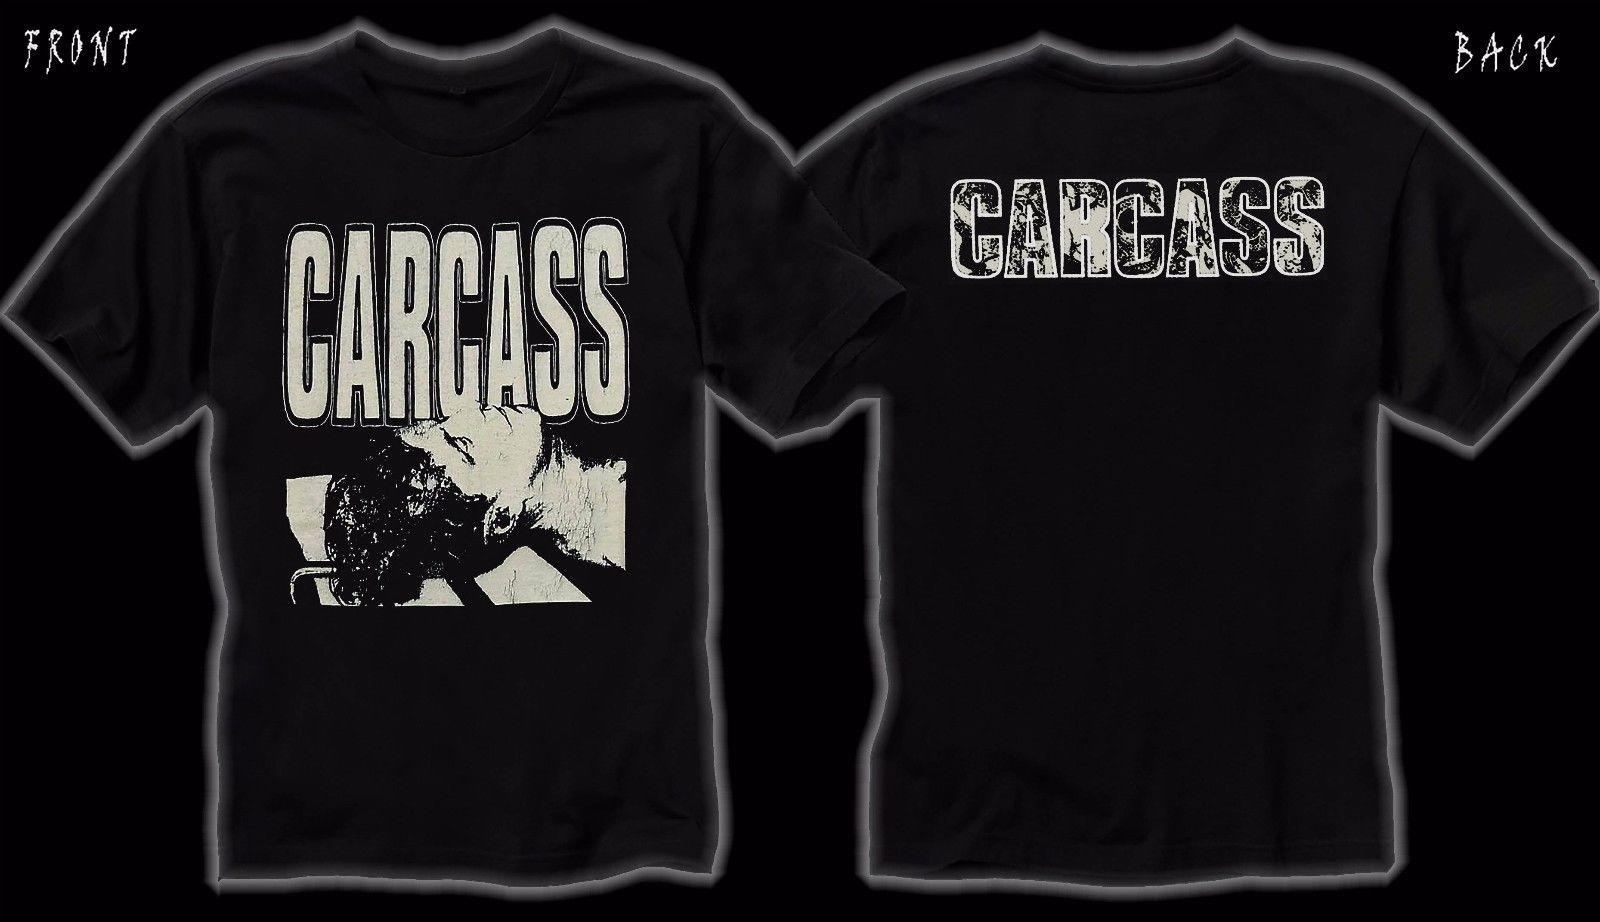 CARCASS: despiértate y huele el ... Carcass, T_shirt-SIZES: S to 6XL